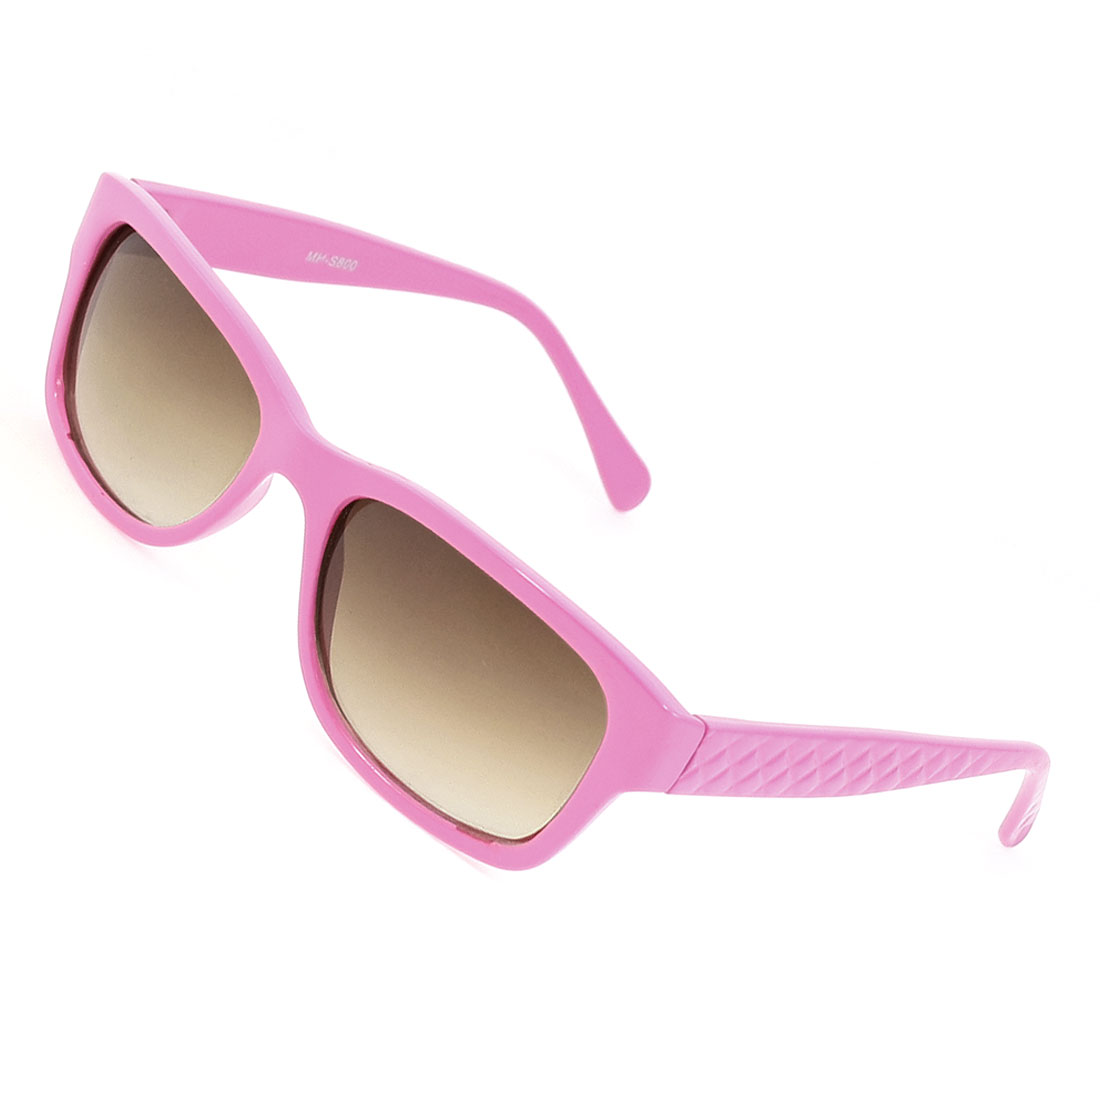 Brown Lens Pink Plastic Textured Arms Full Frame Sunglasses for Women